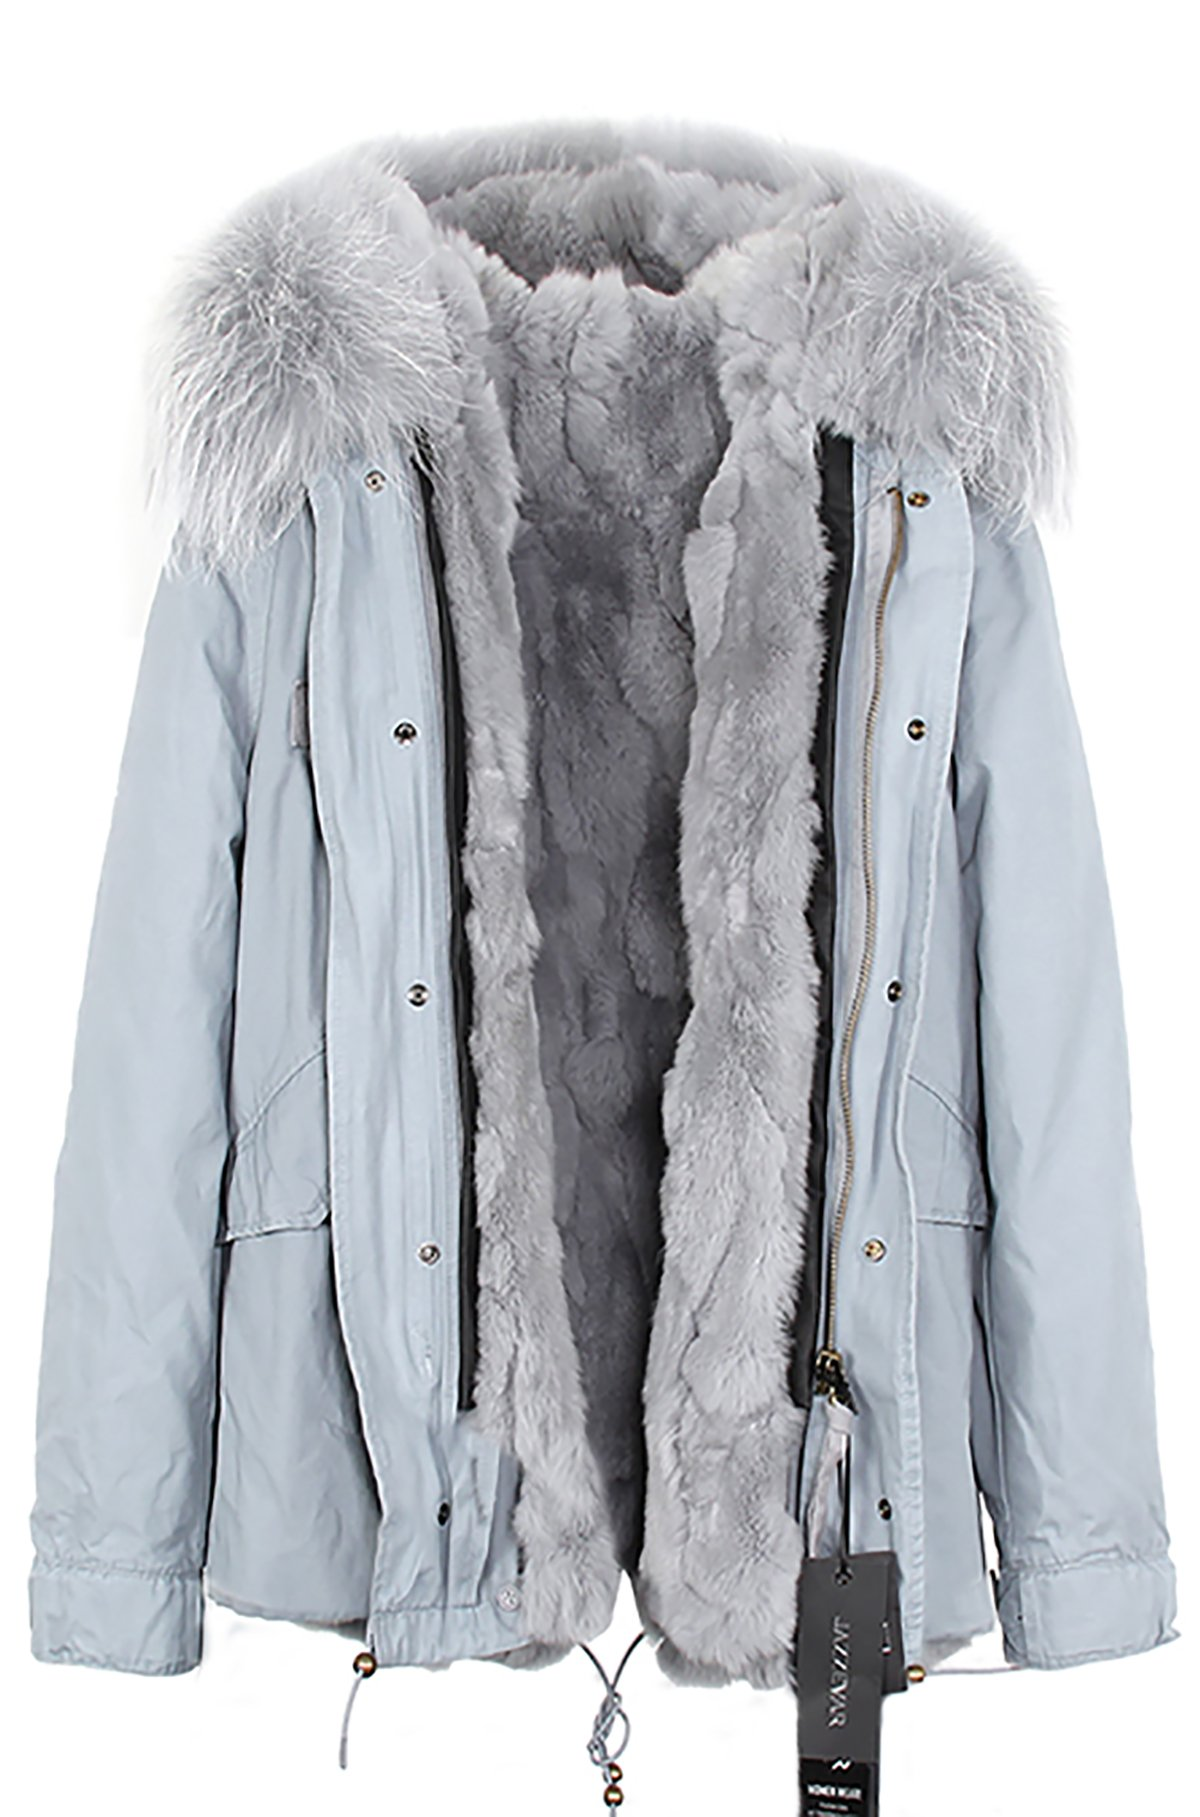 S.ROMZA Women Thick Real Rabbit Fur Parka Hooded Coat Winter Jacket Detachable Fur Trim (Medium, Grey) by S.ROMZA